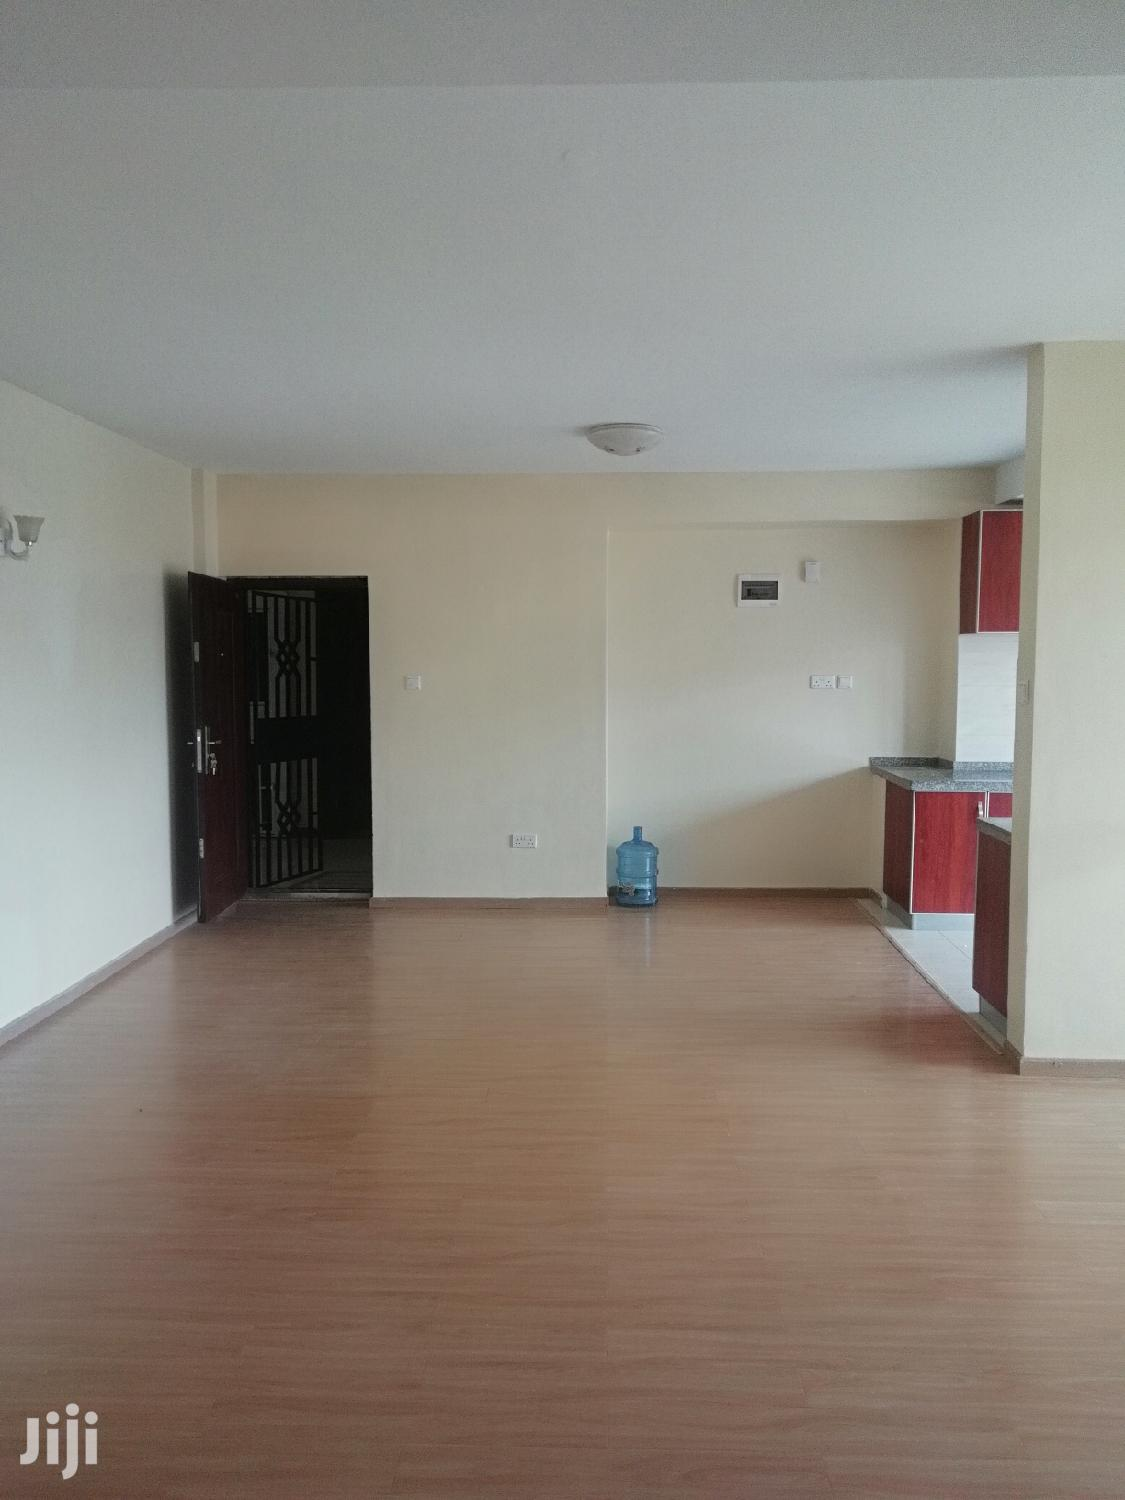 Property World;2brs Apartment Master,Gym,Lift And Secure   Houses & Apartments For Rent for sale in Lavington, Nairobi, Kenya